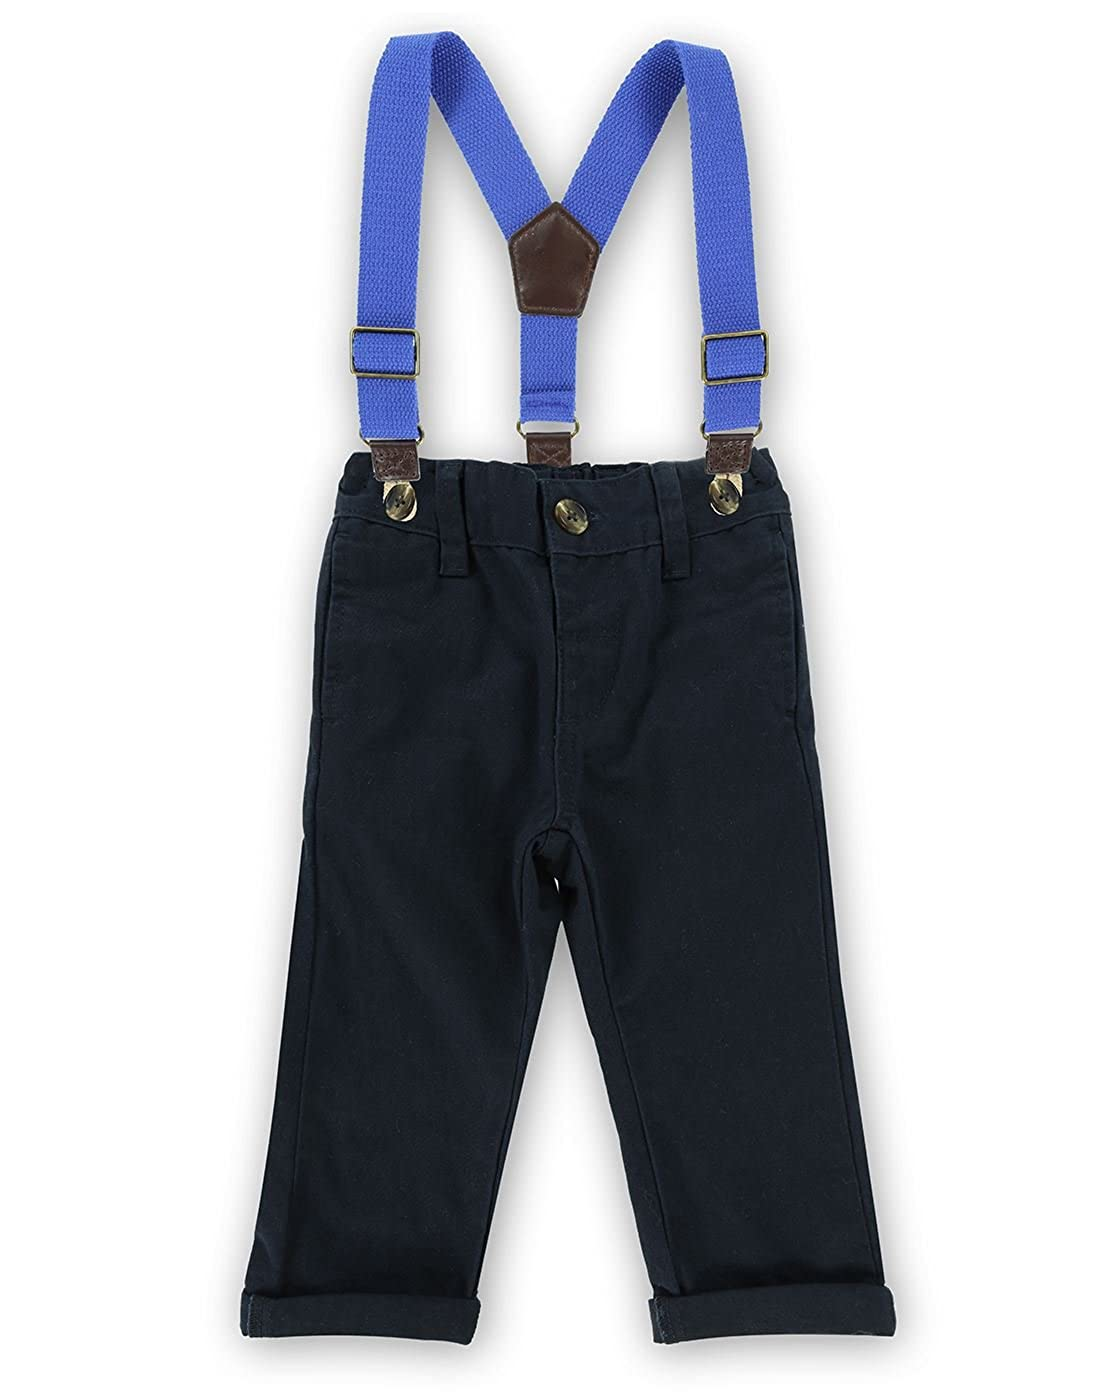 The Essential One Baby Kids Boys Smart Trousers With Detachable Braces - Navy Blue - EOT728